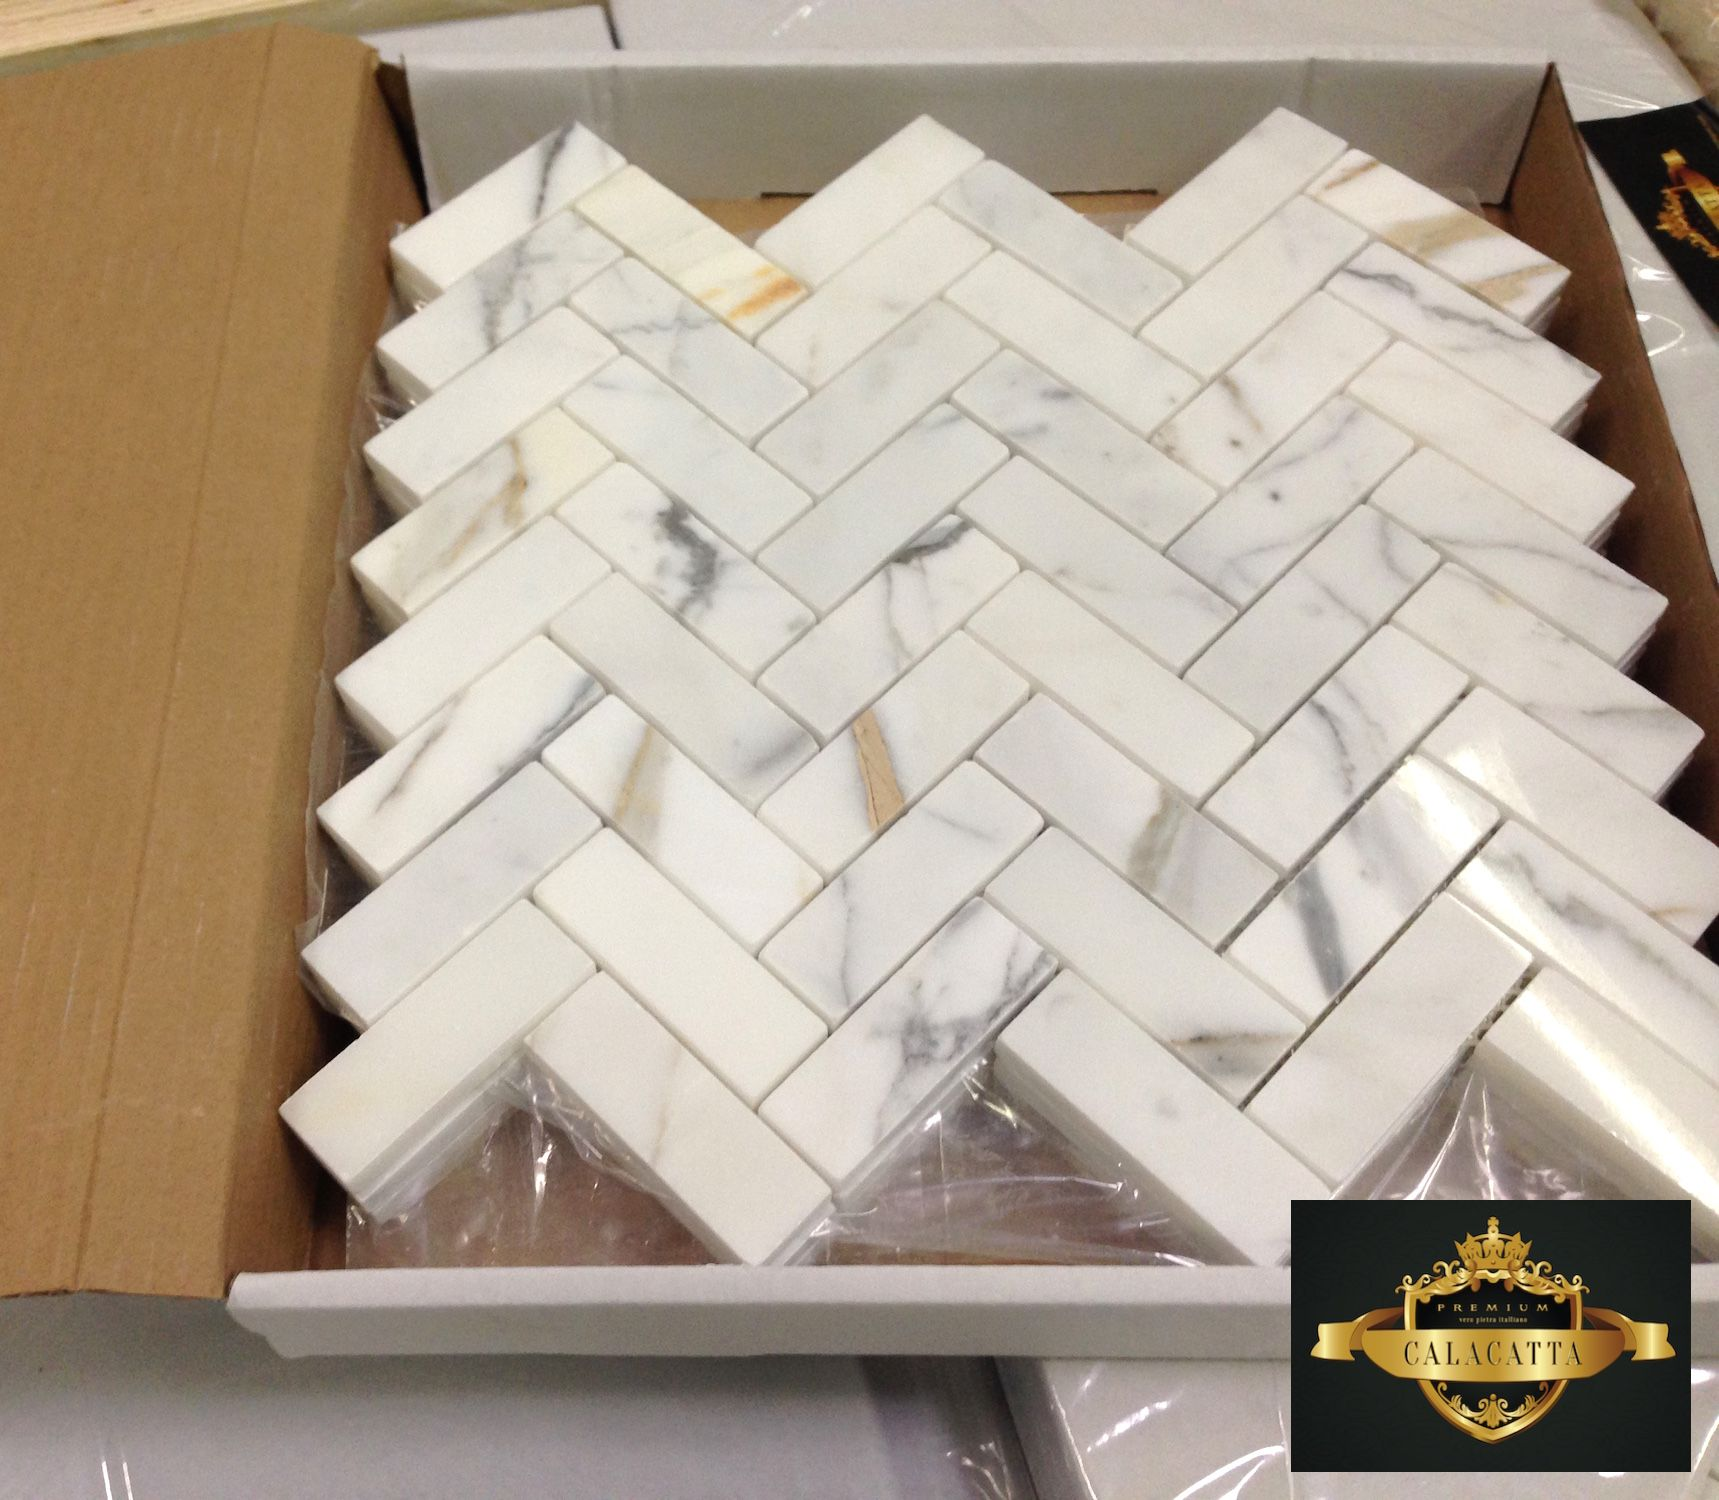 Italian Marble Calacatta Gold 1x3 Herringbone Mosaic Tile Available In Hond And Polished 16 95sf Herringbone Mosaic Tile Calacatta Mosaic